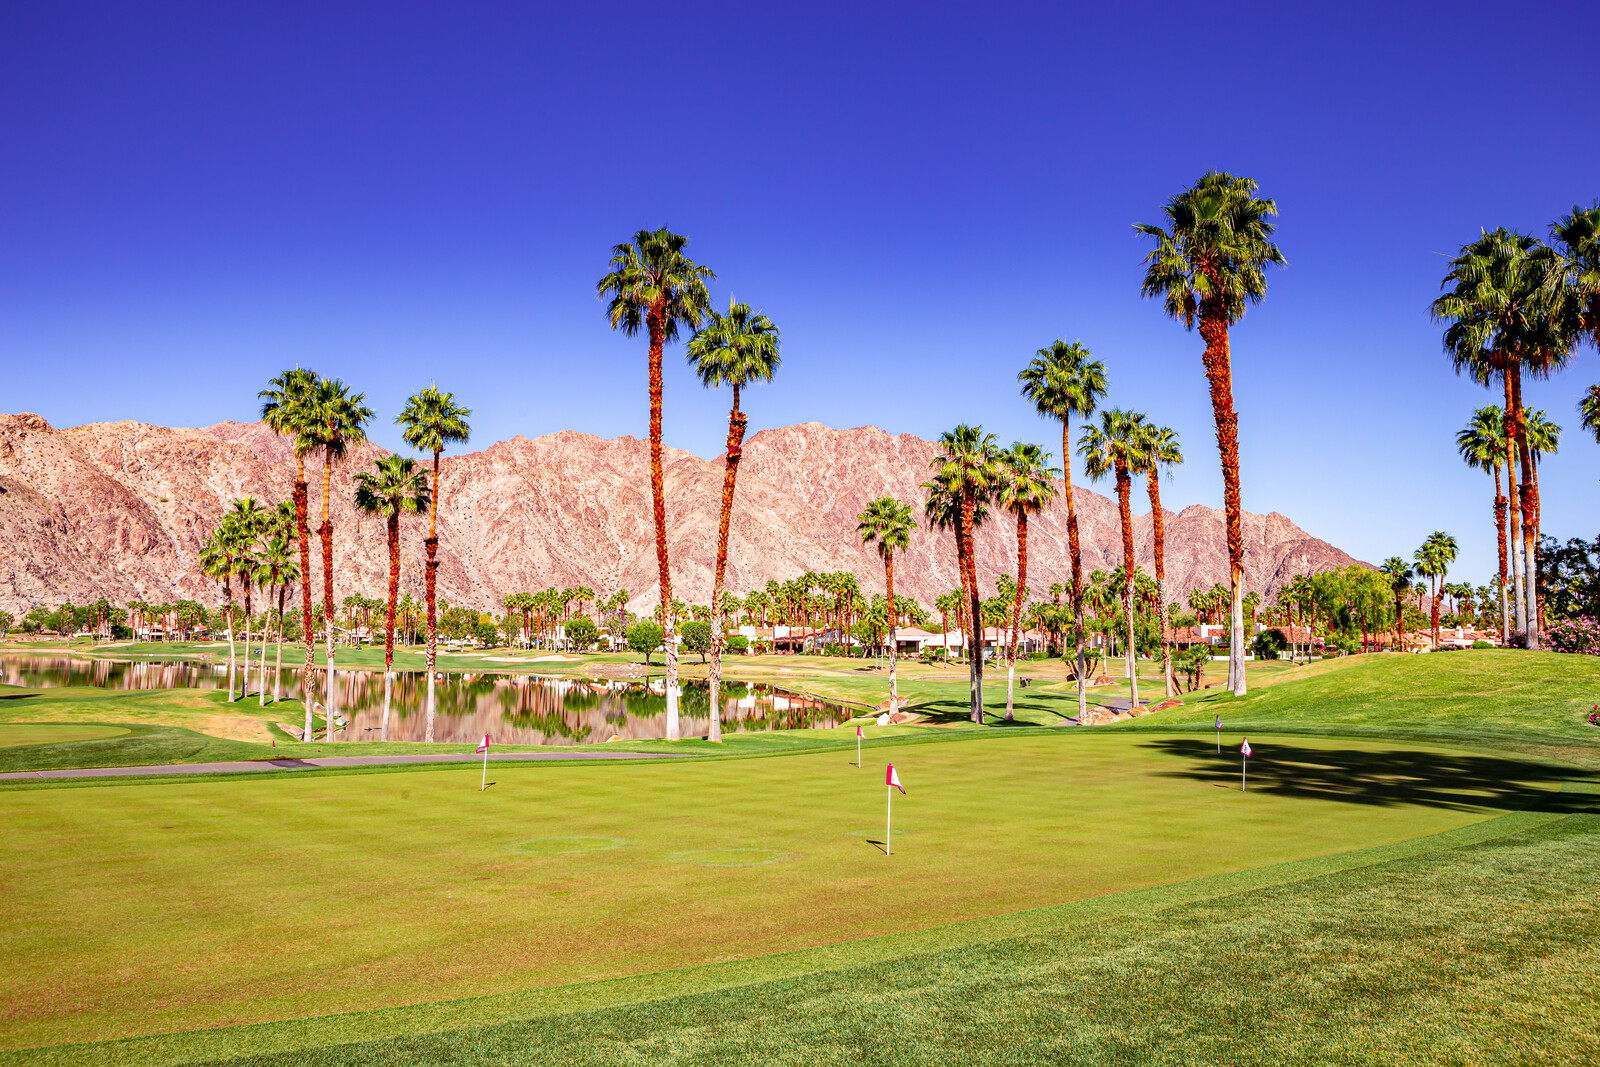 Exquisitely manicured golf course greens lined with palm trees, with clear blue skies